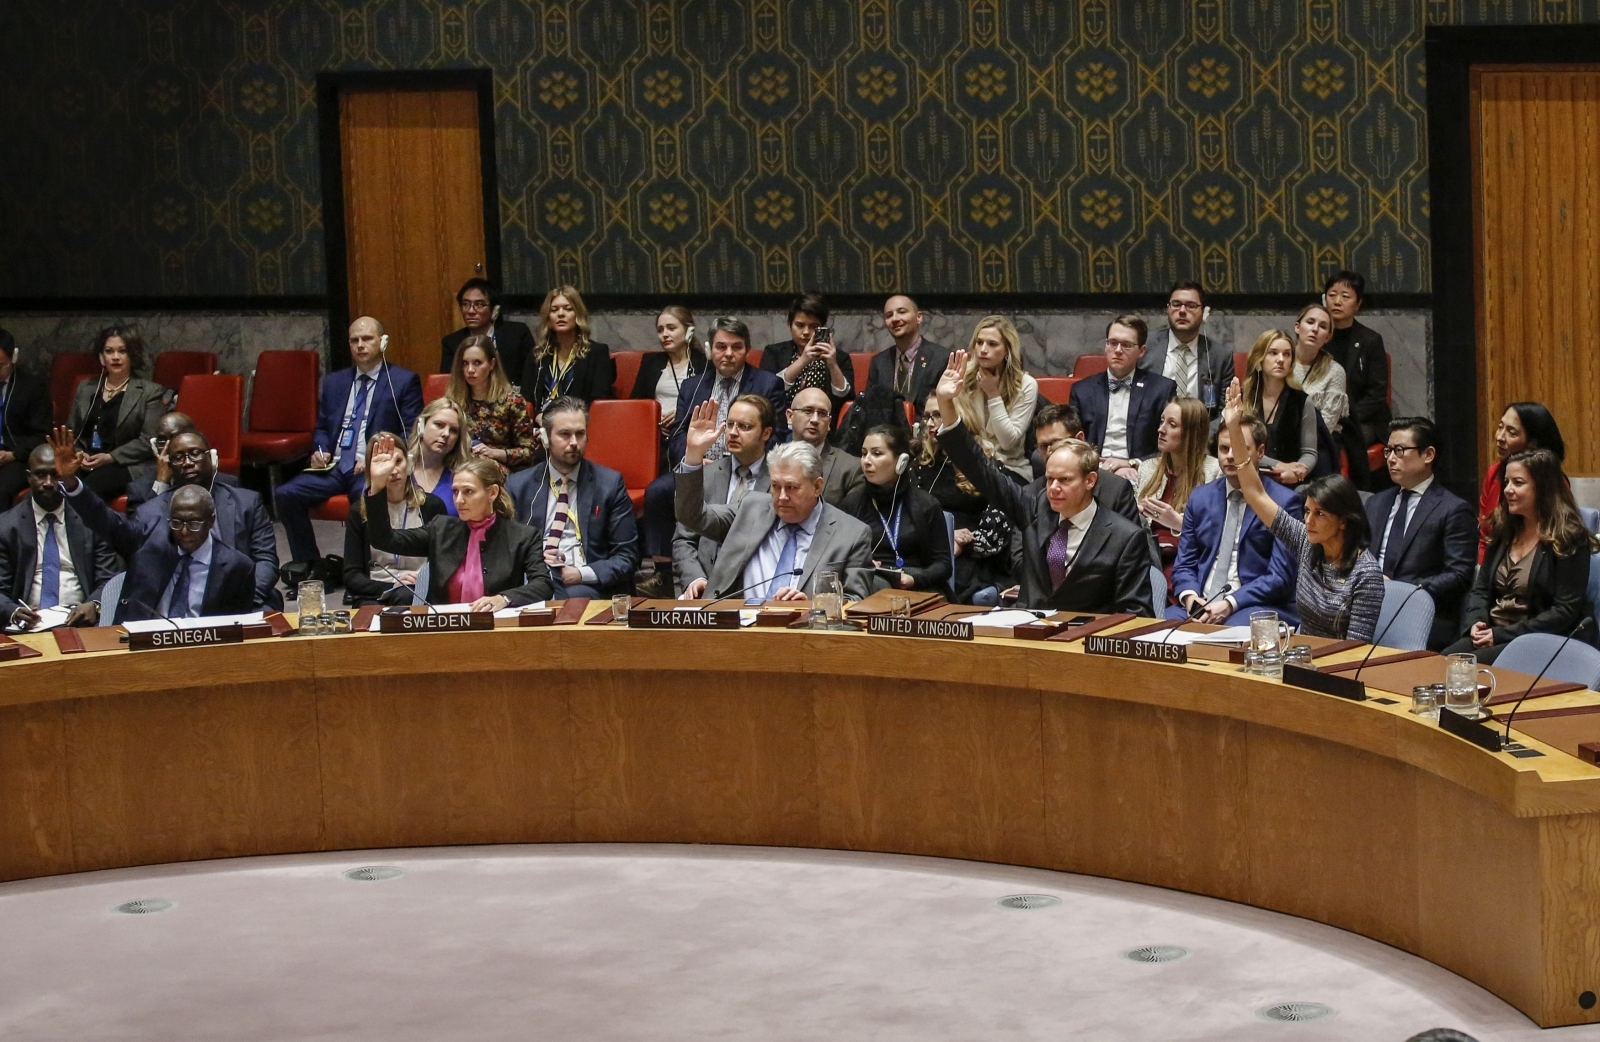 UN Security Council on North Korean sanctions